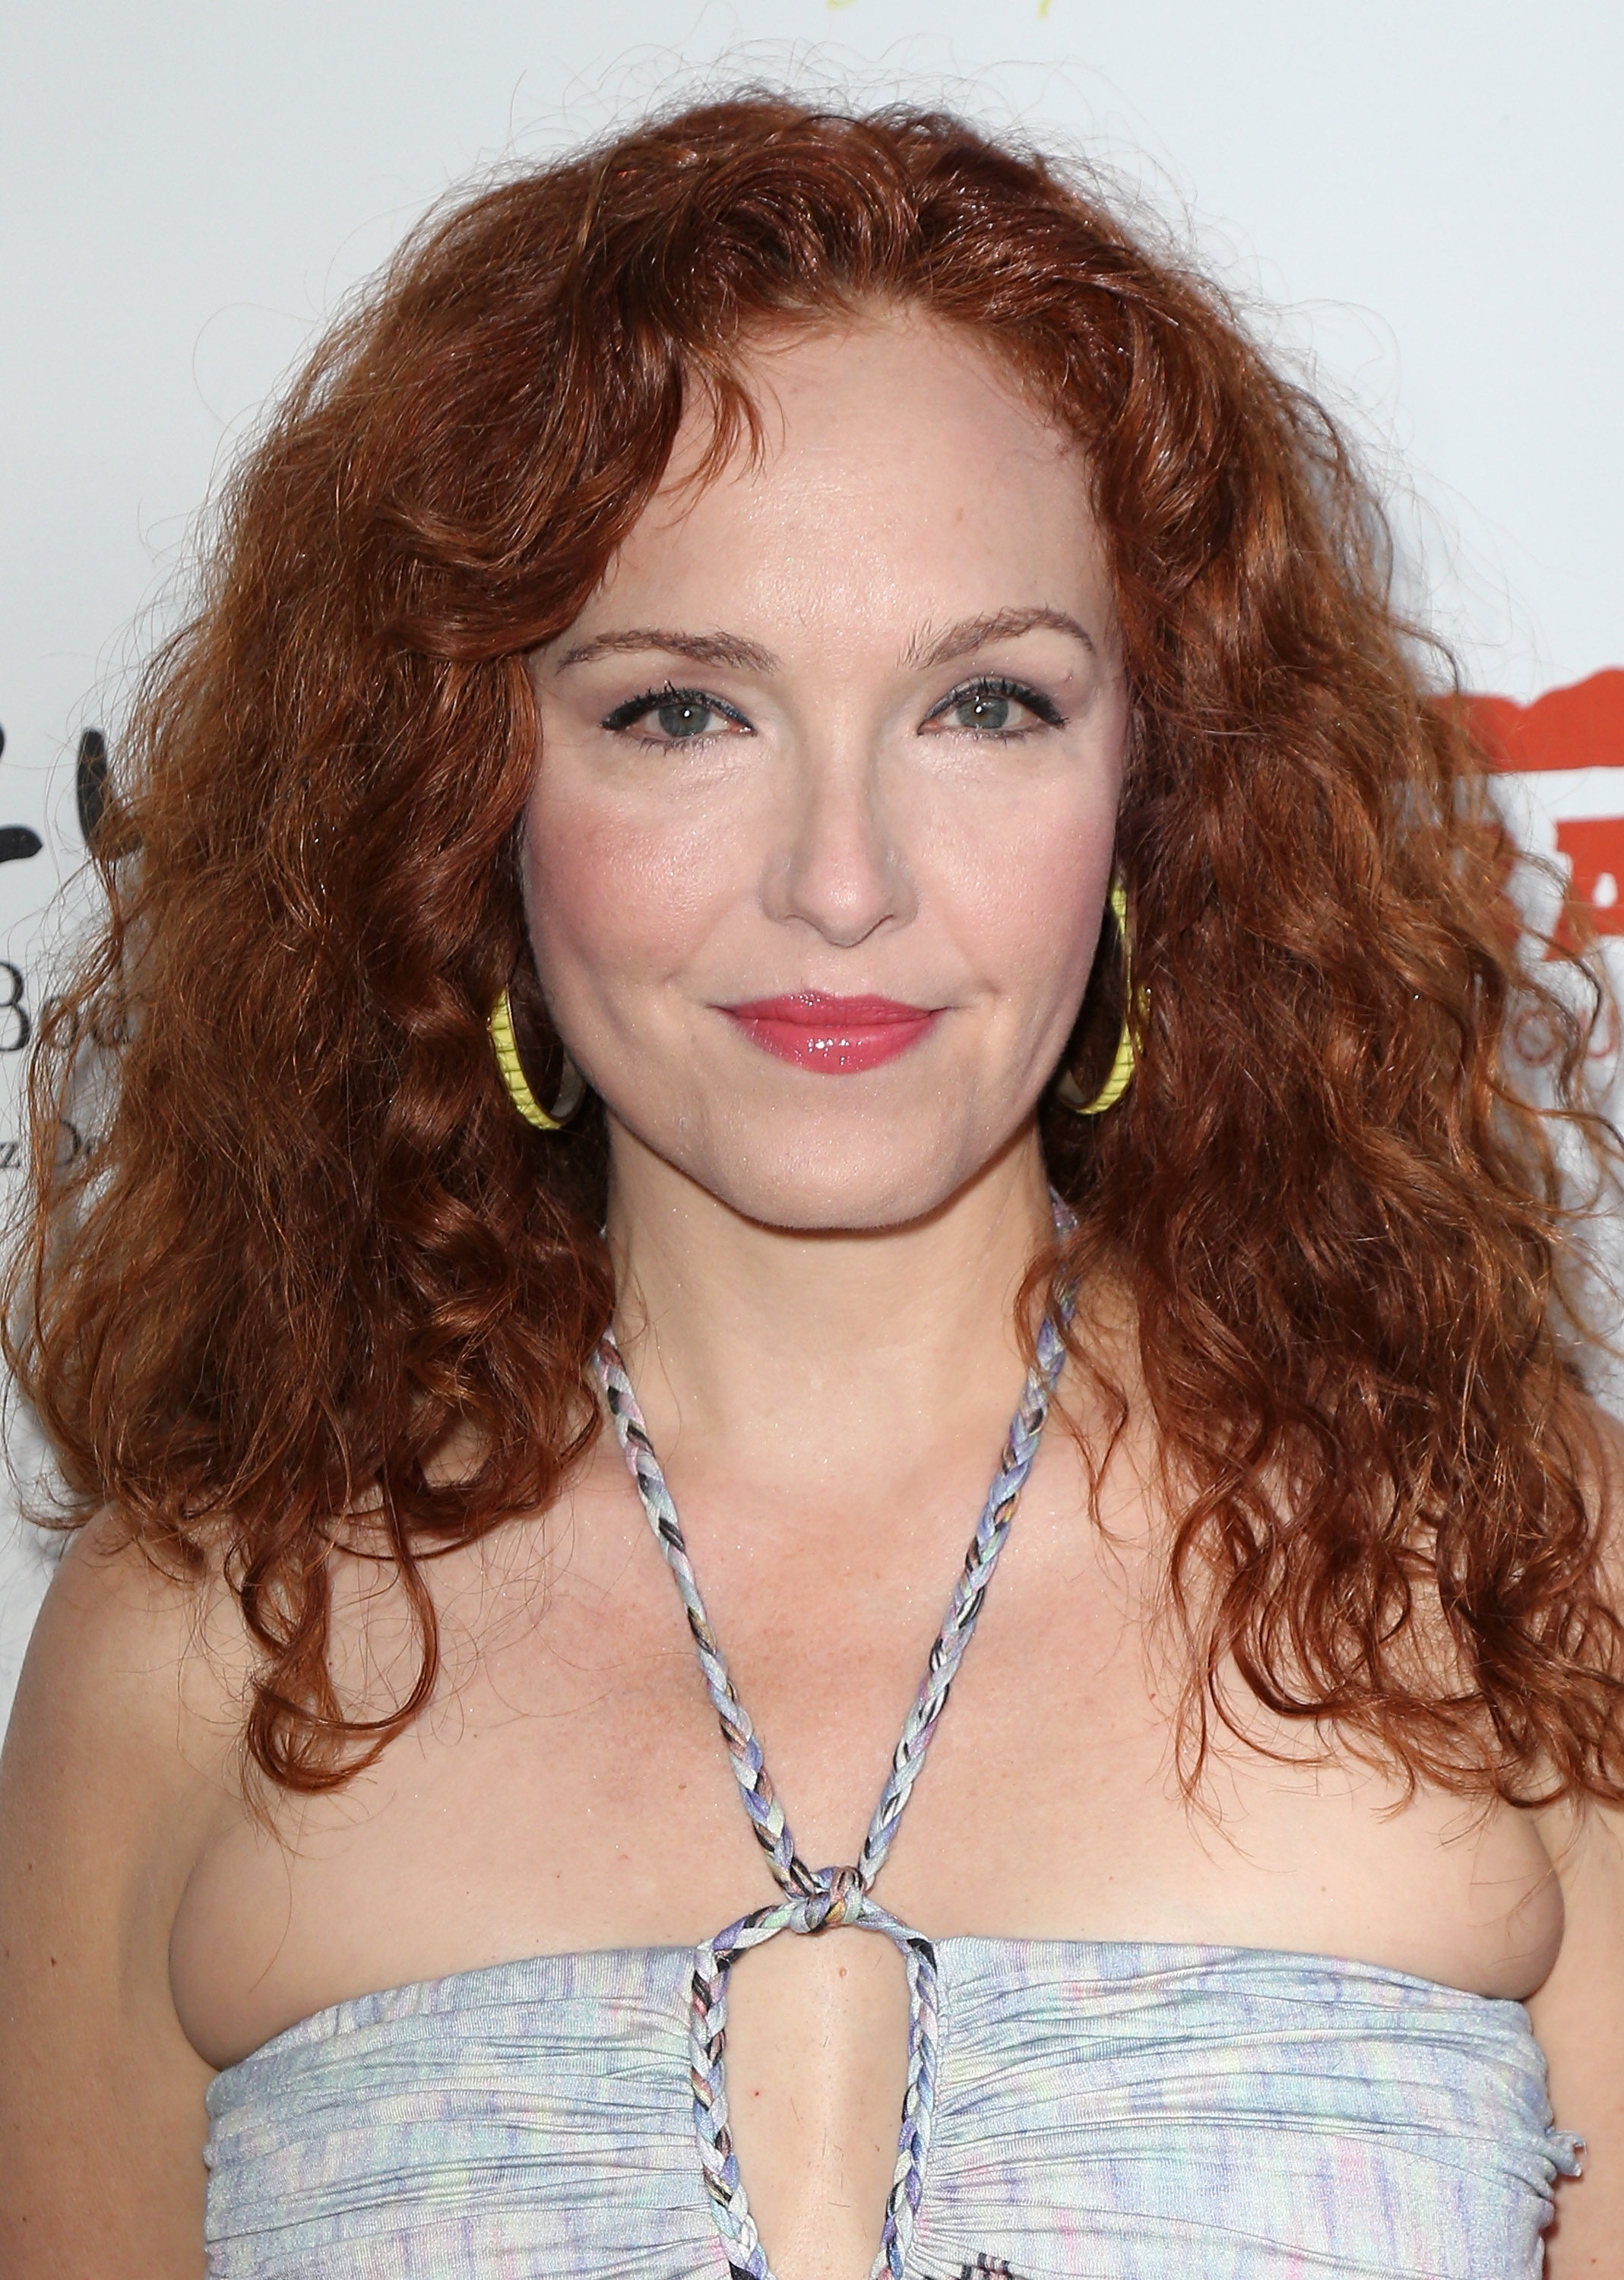 Amy Yasbeck amy yasbeck: glee should move forward without cory monteith